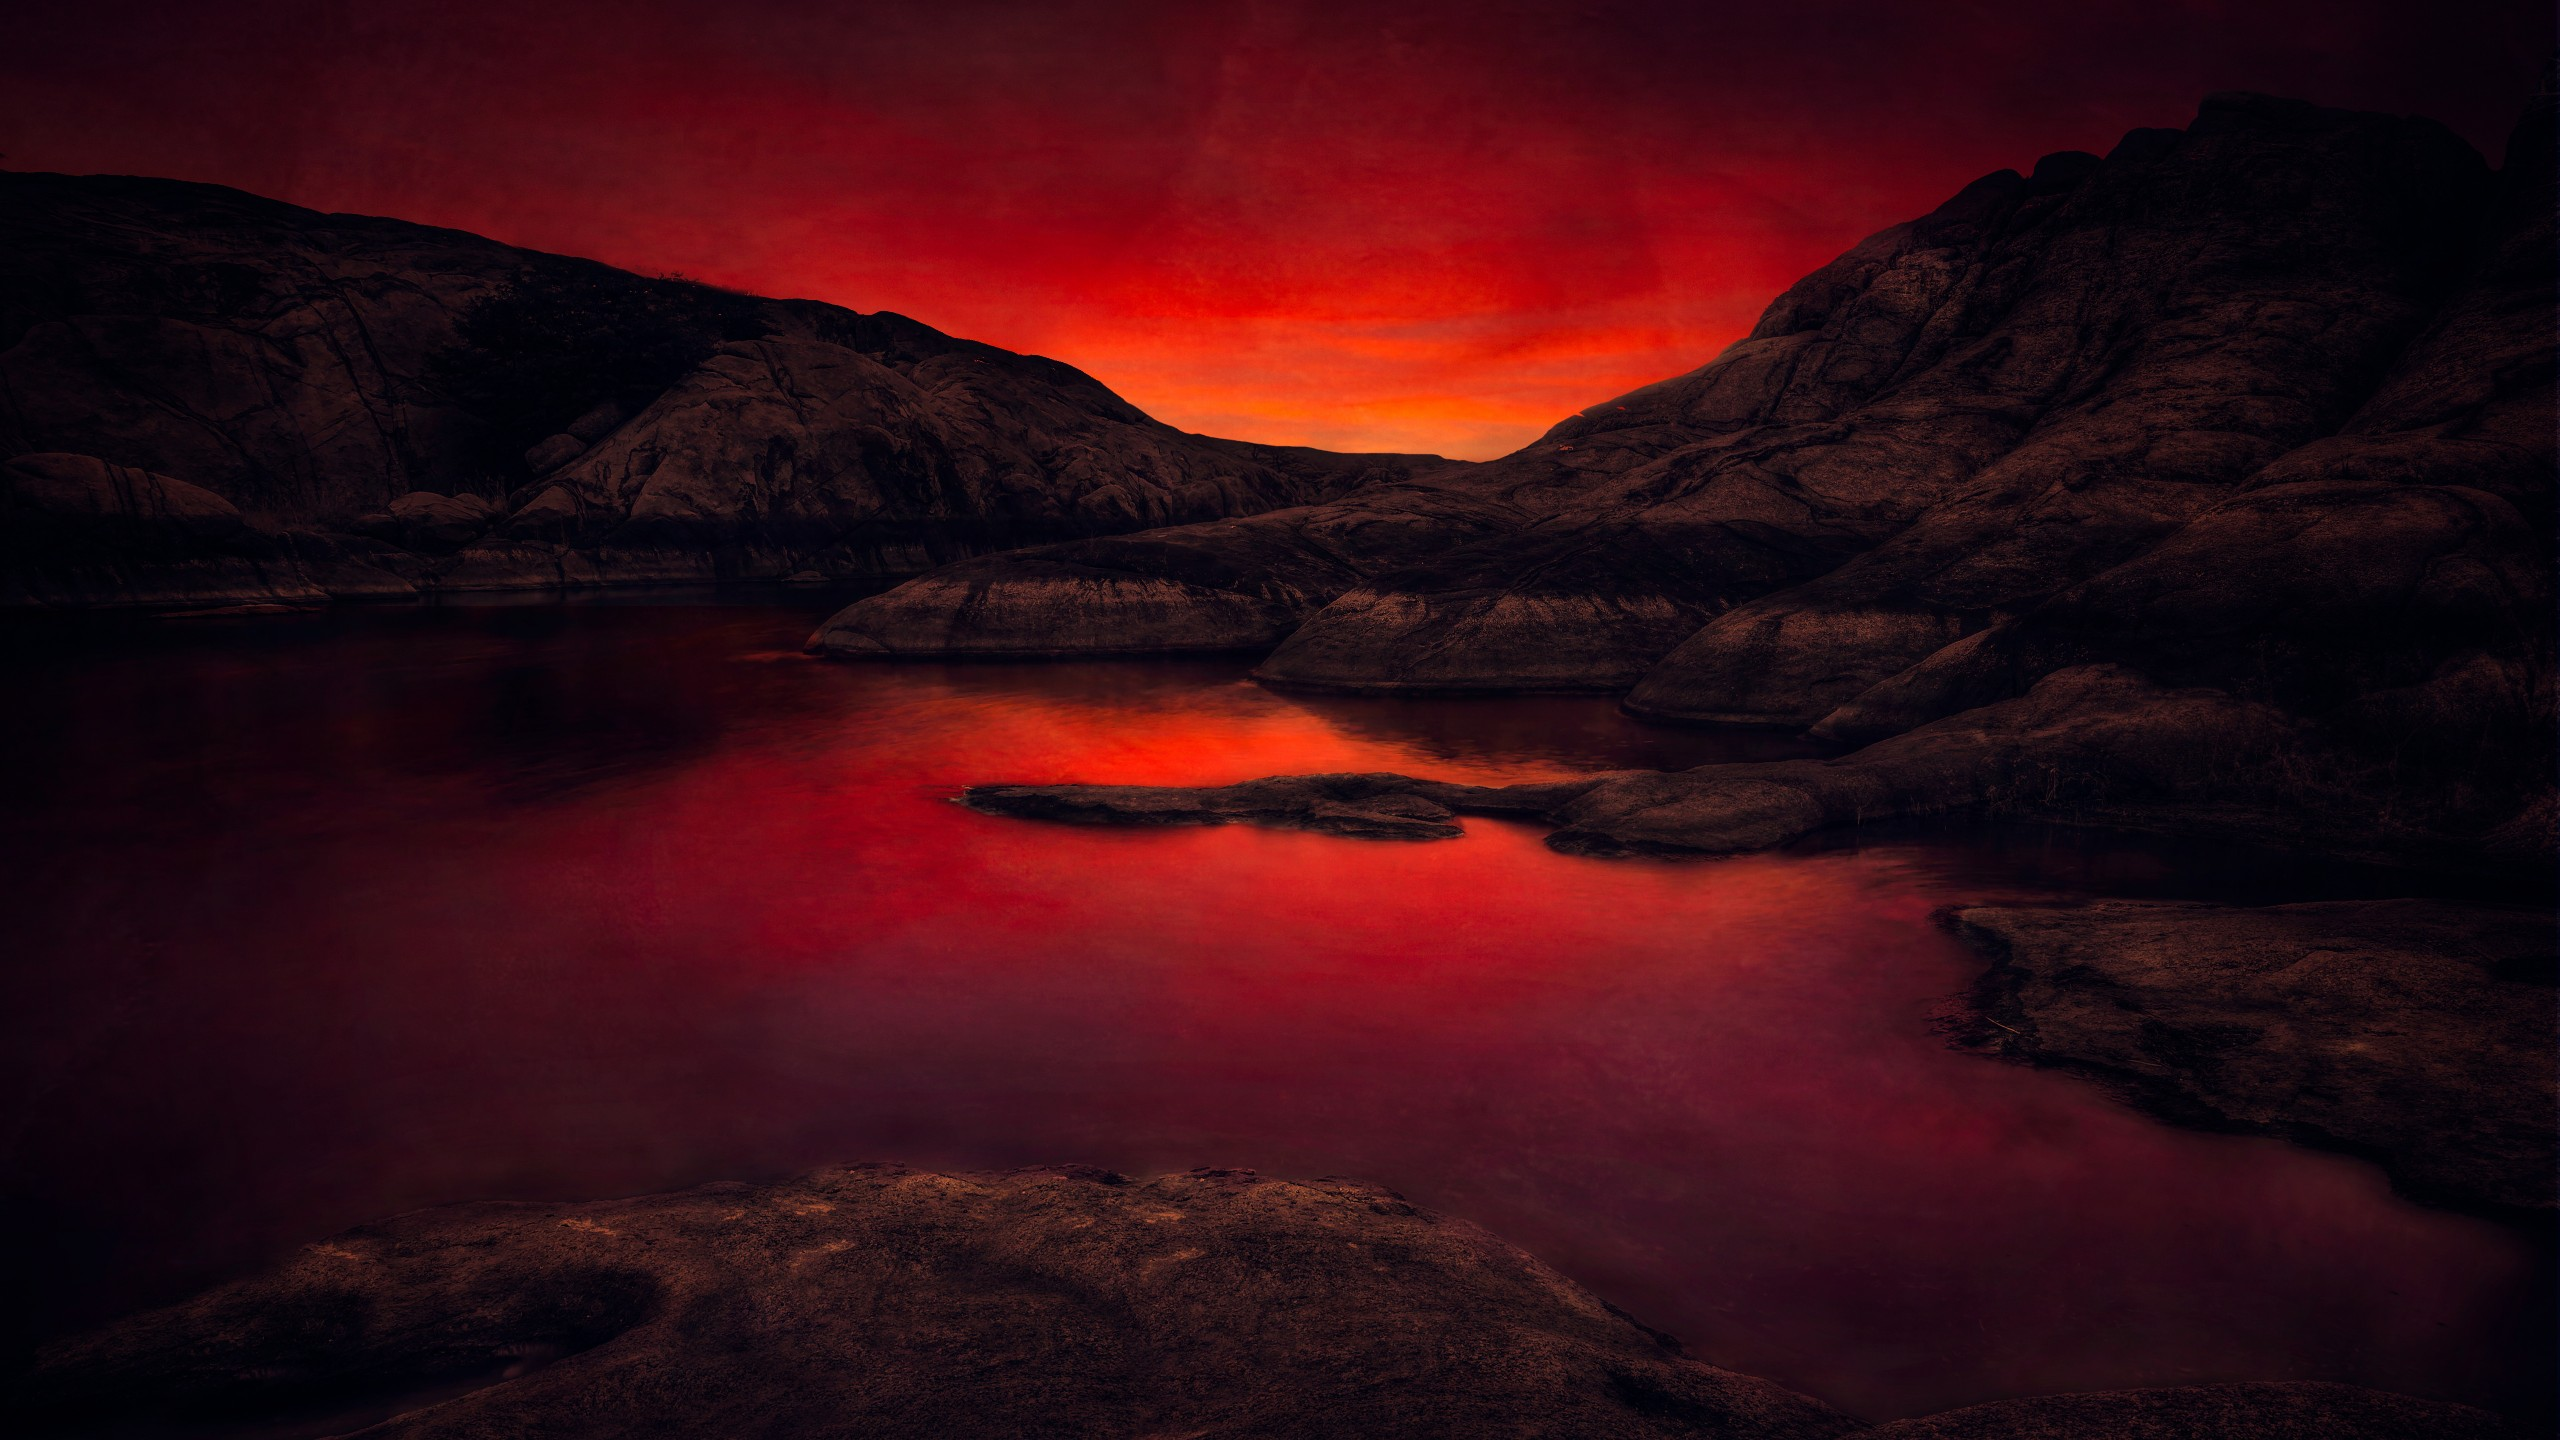 5k ultra hd wallpapers,sky,nature,red,natural landscape,reflection